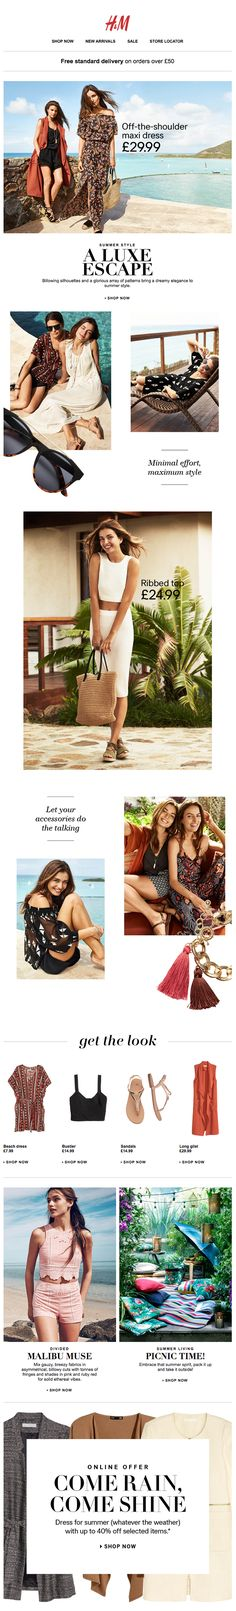 H&M | newsletter | fashion email | fashion design | email | email marketing | email inspiration | e-mail